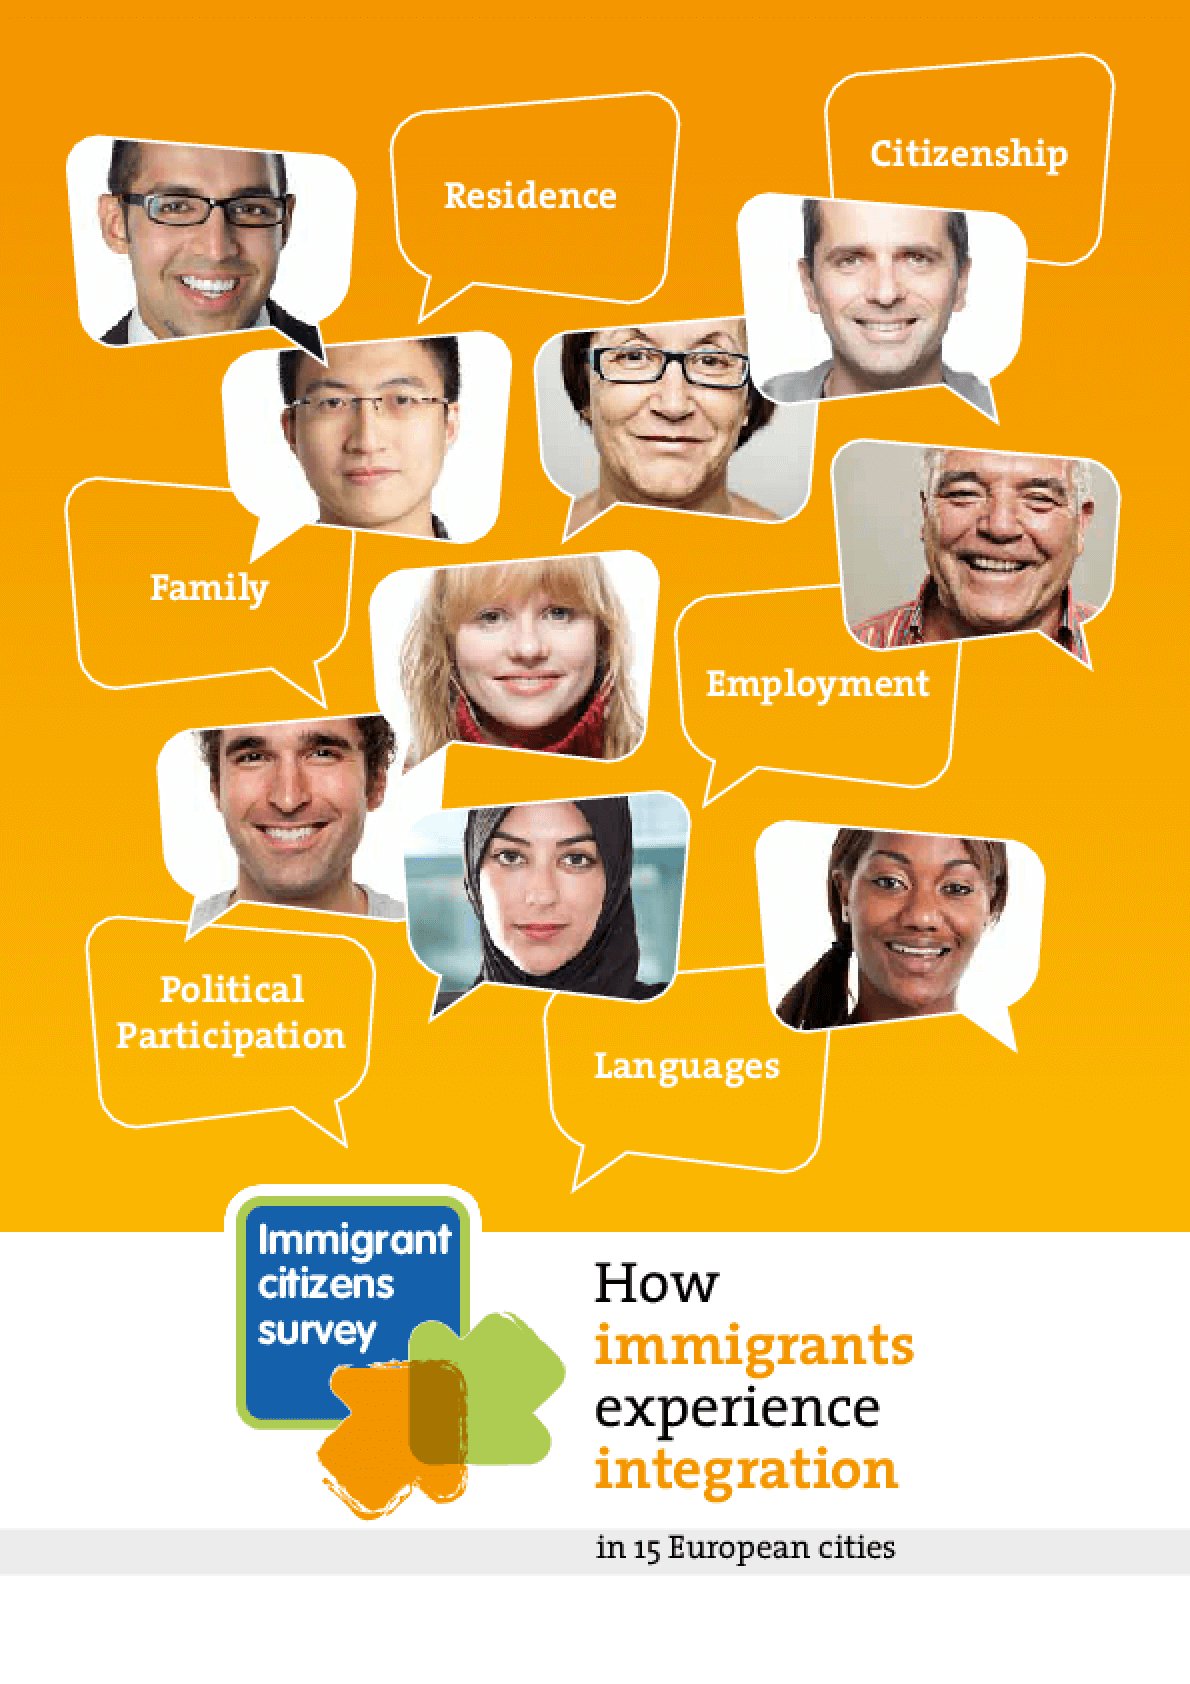 Immigrant Citizens Survey